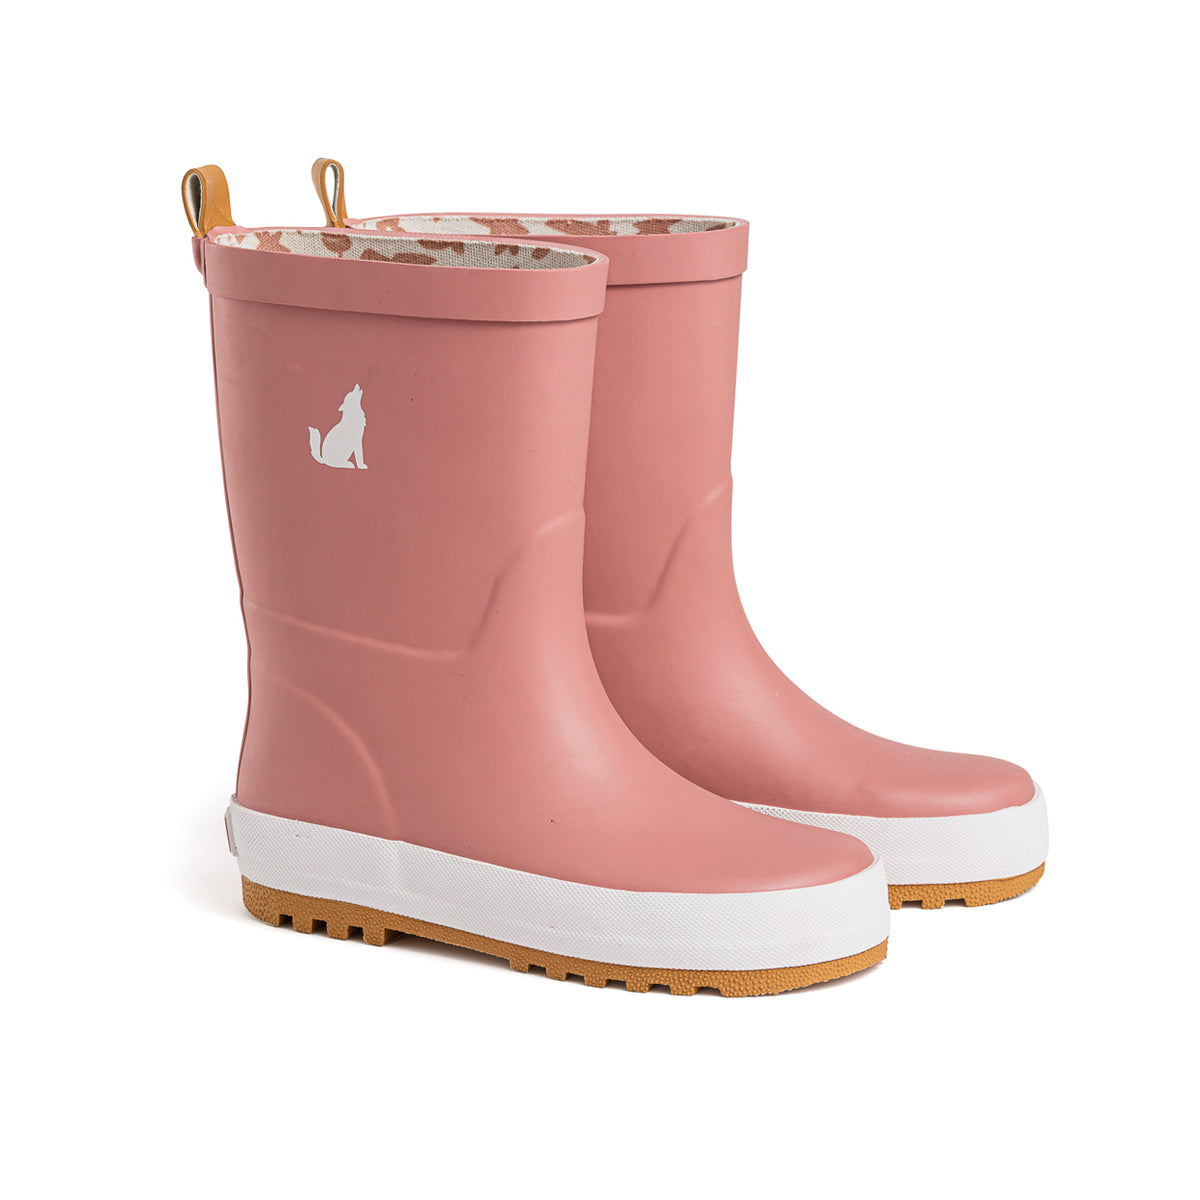 Kids Gumboot Dusty Rose